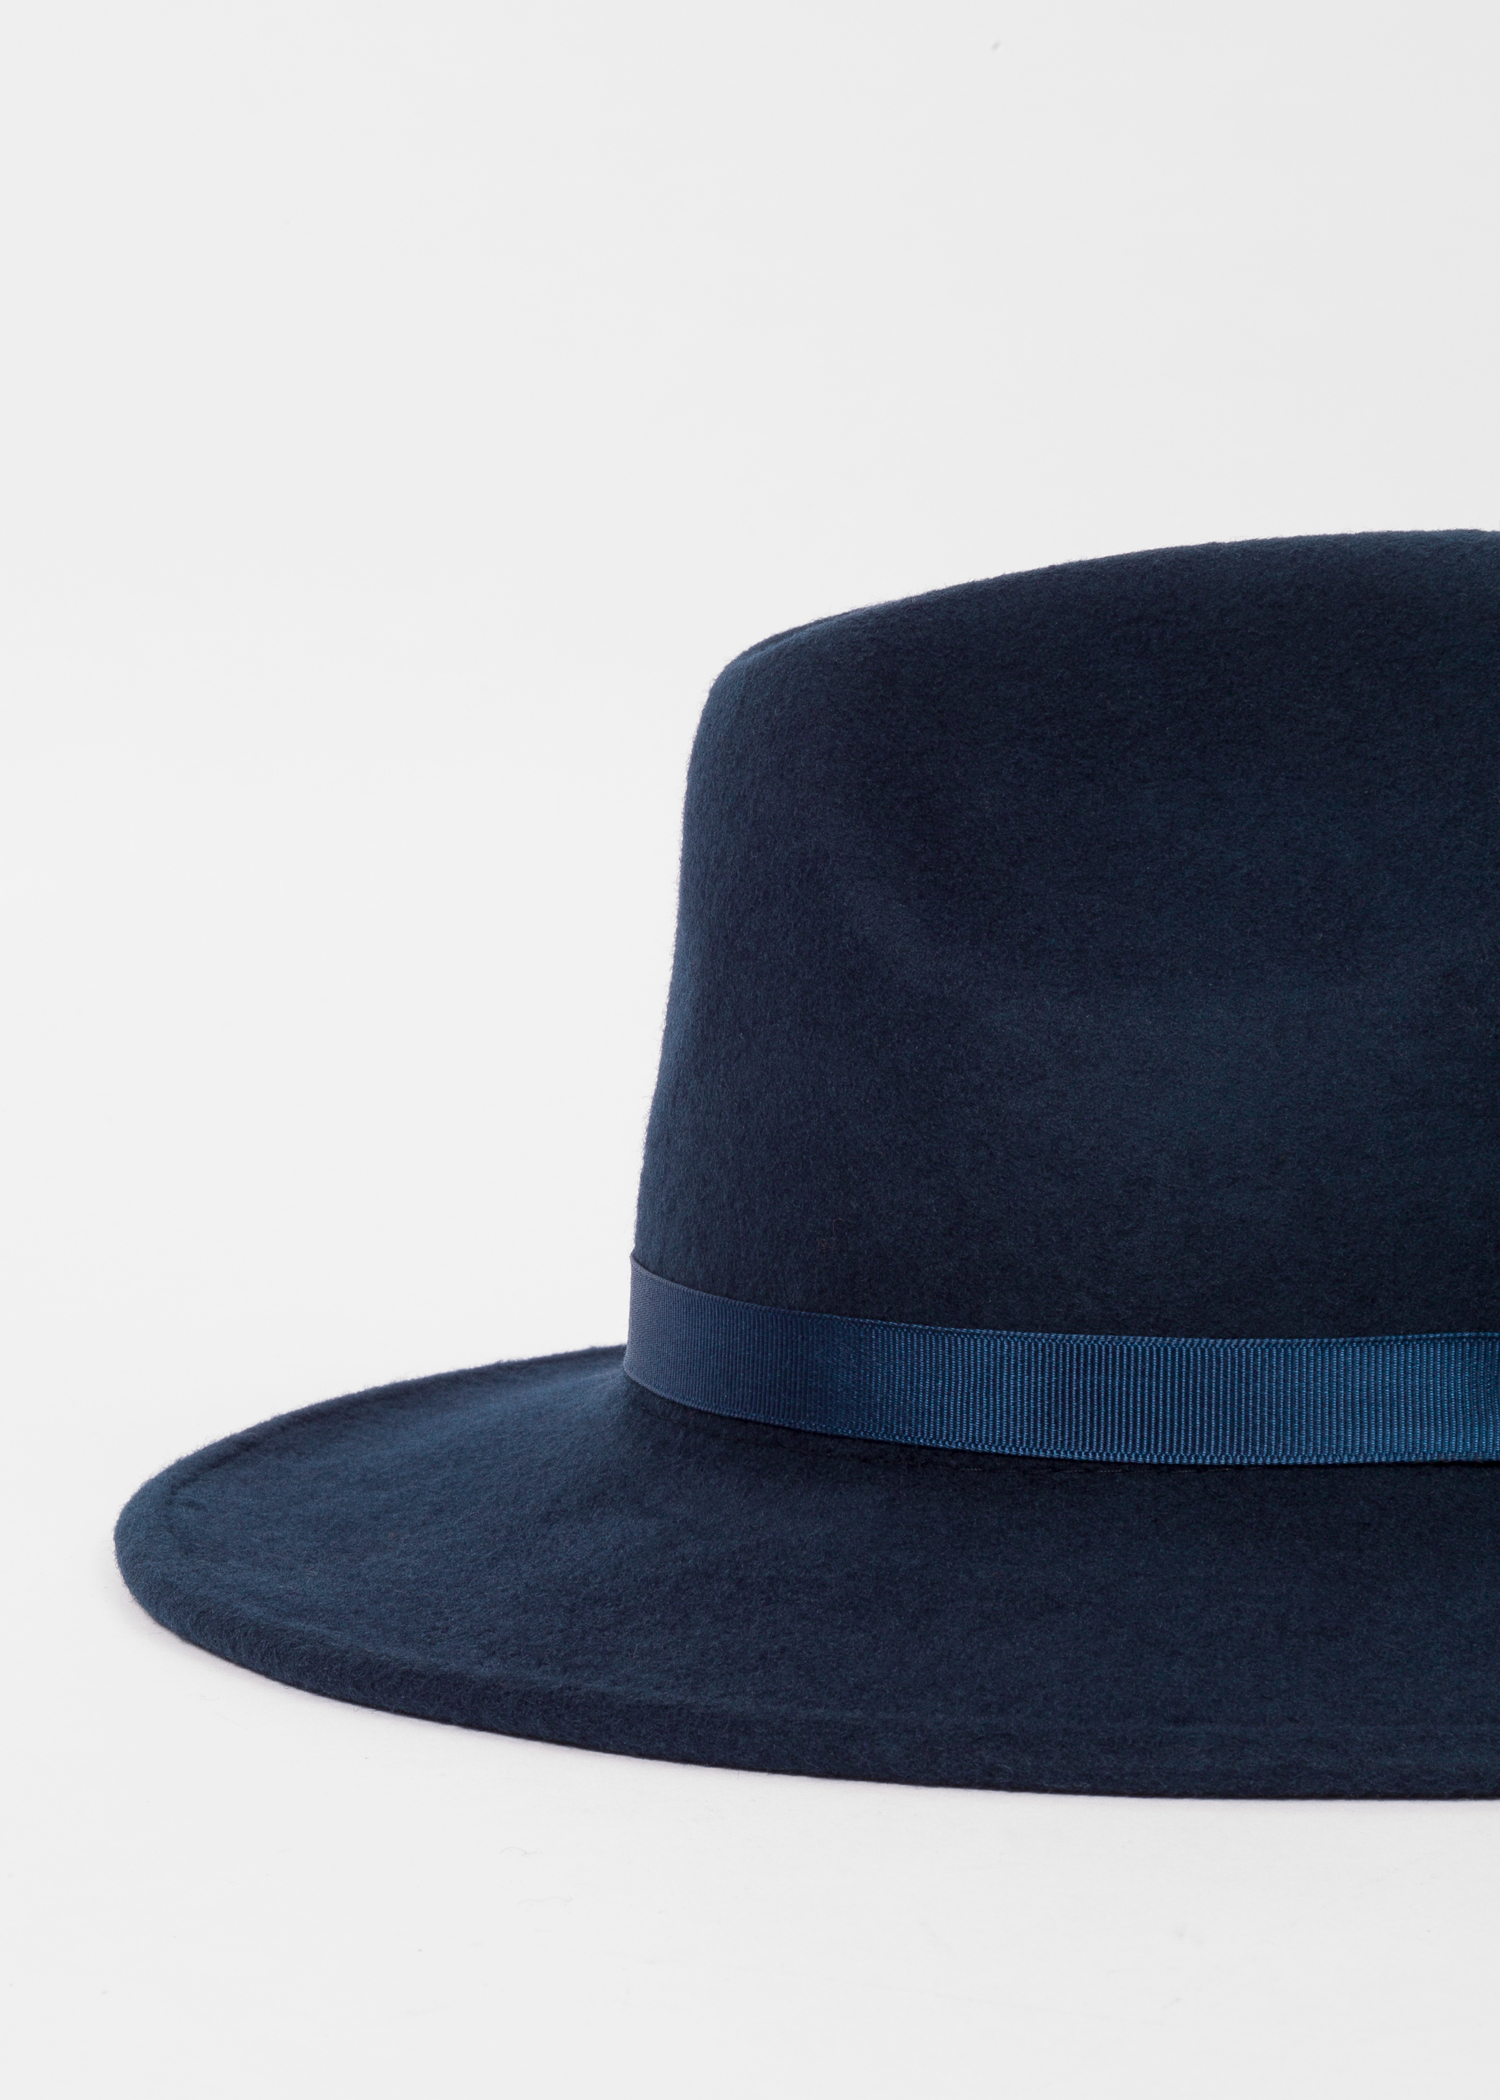 155ab85b91ee4c Detailed View - Women's Navy Wool Felt Fedora Hat Paul Smith